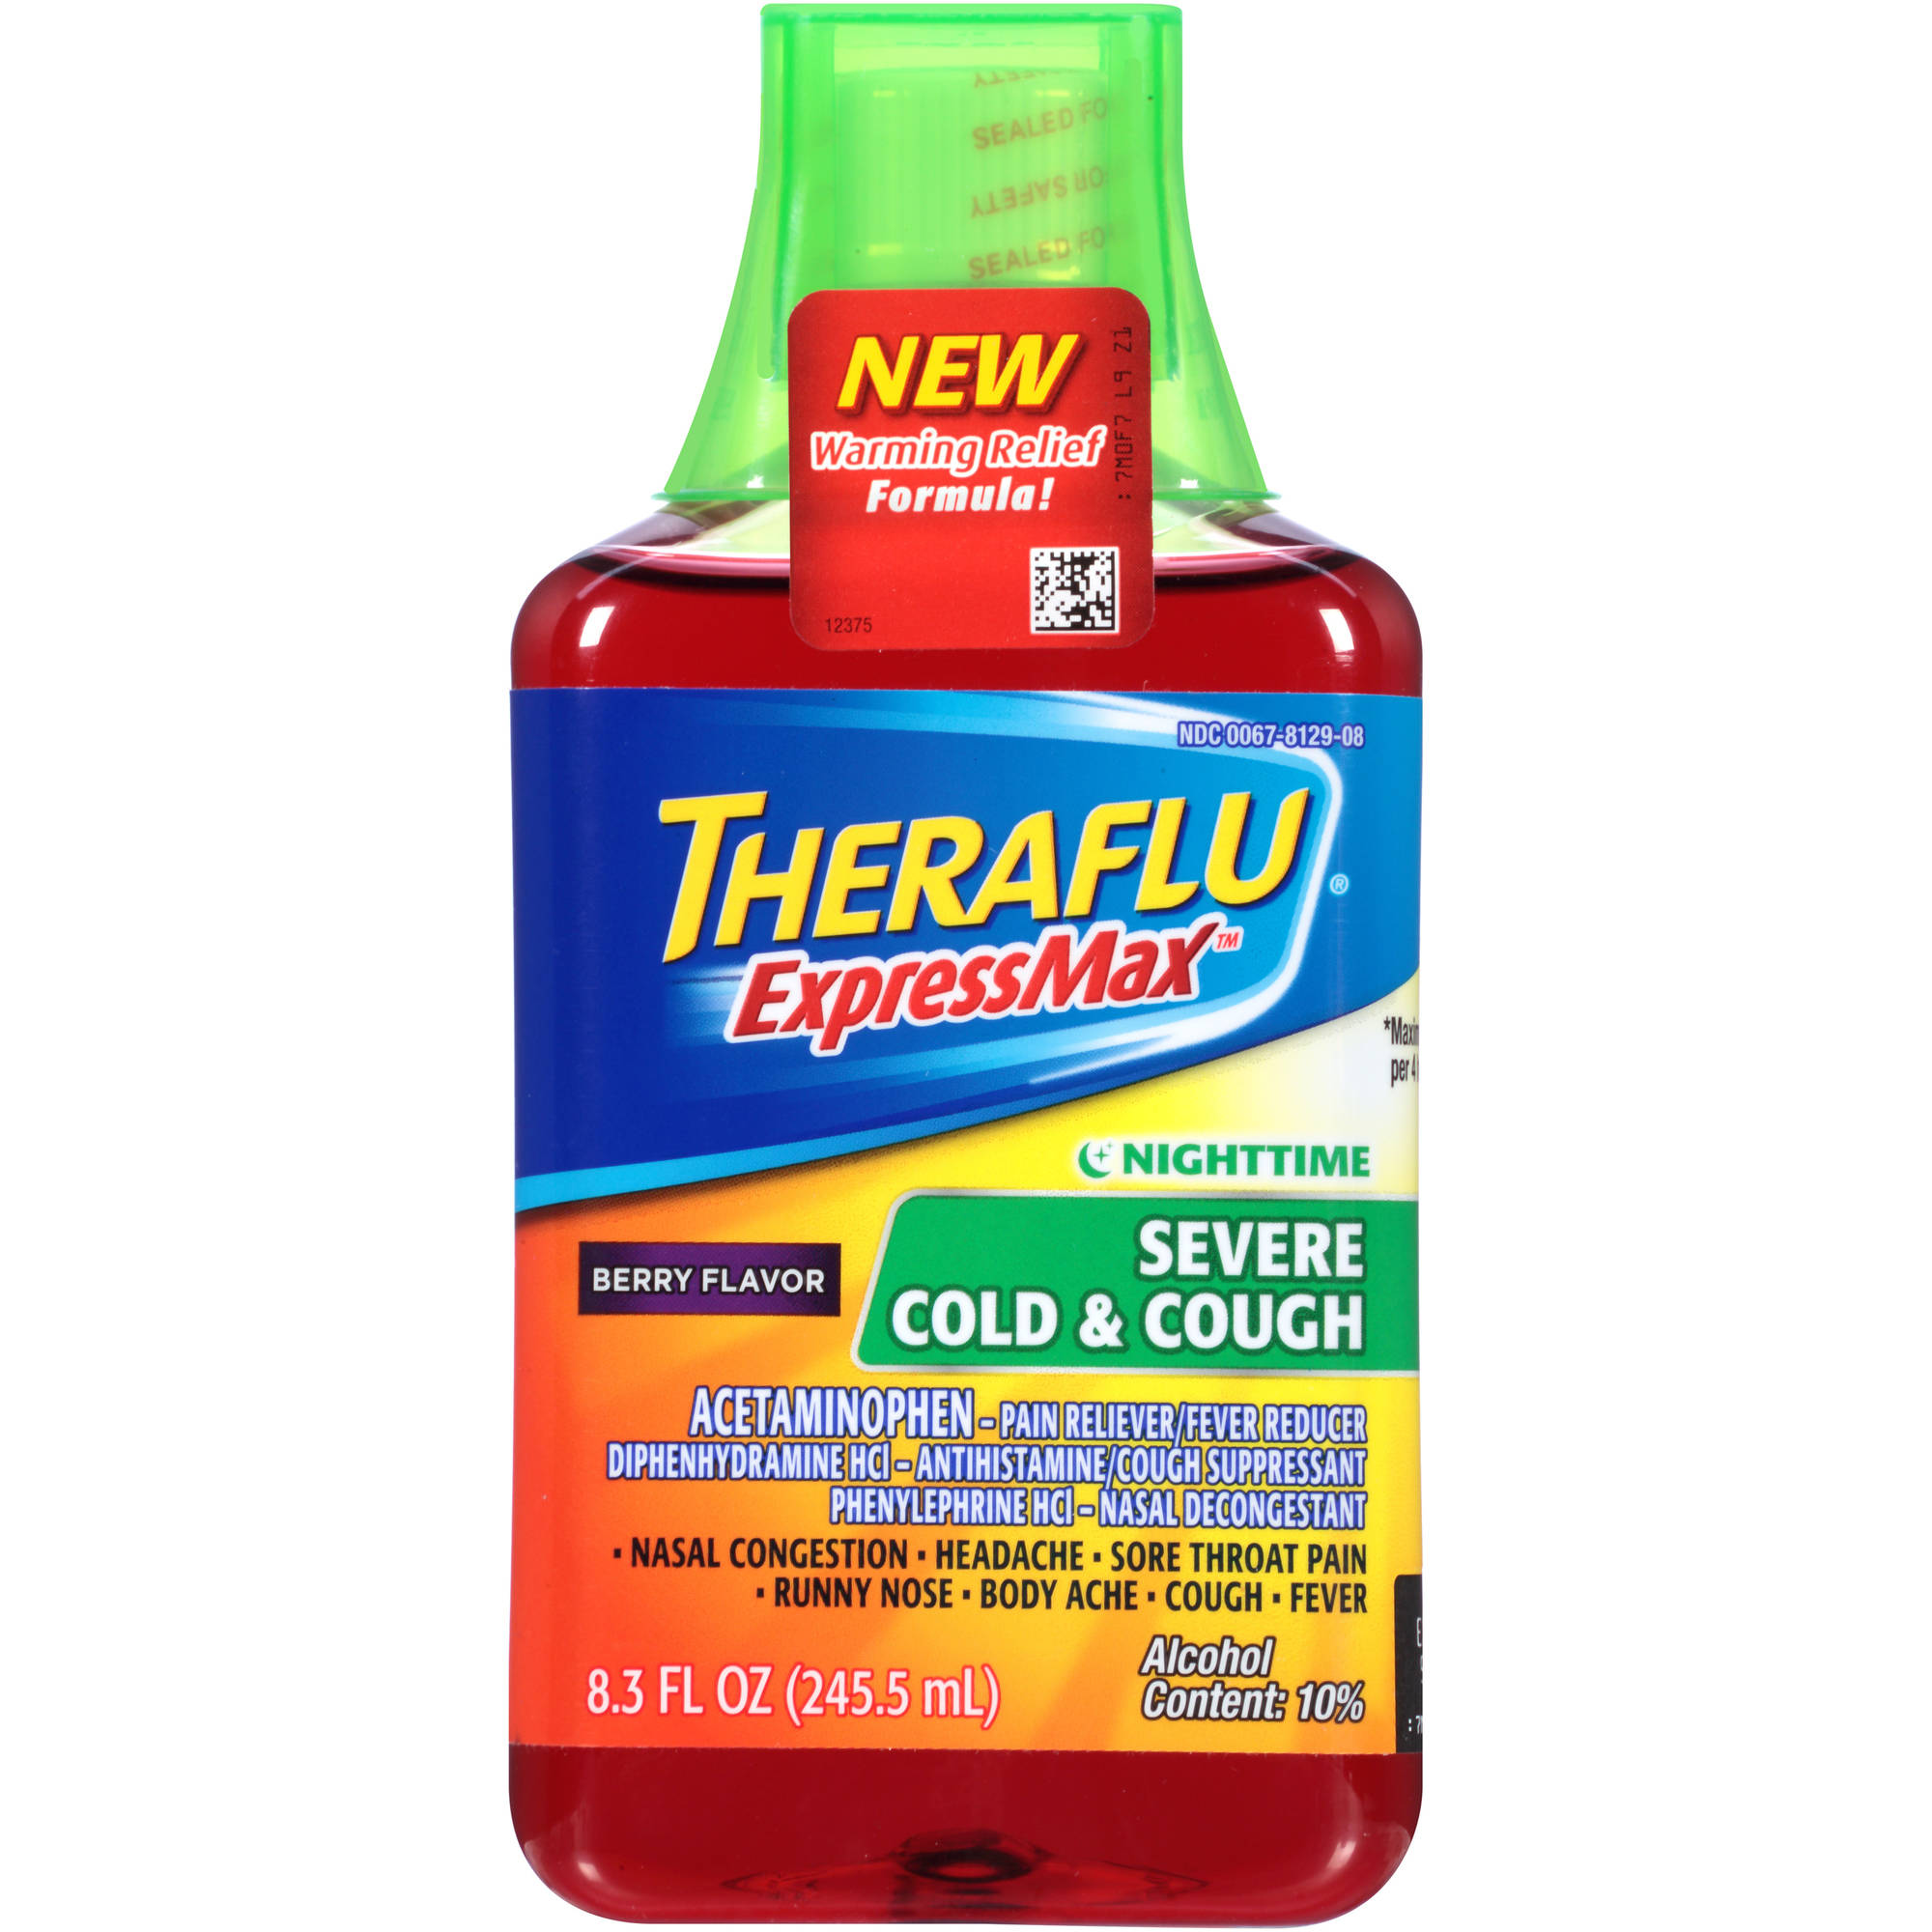 Theraflu Cold & Flu Relief Expressmax Nighttime Severe Cold & Cough, Berry Flavor Syrup, 8.3 fl oz